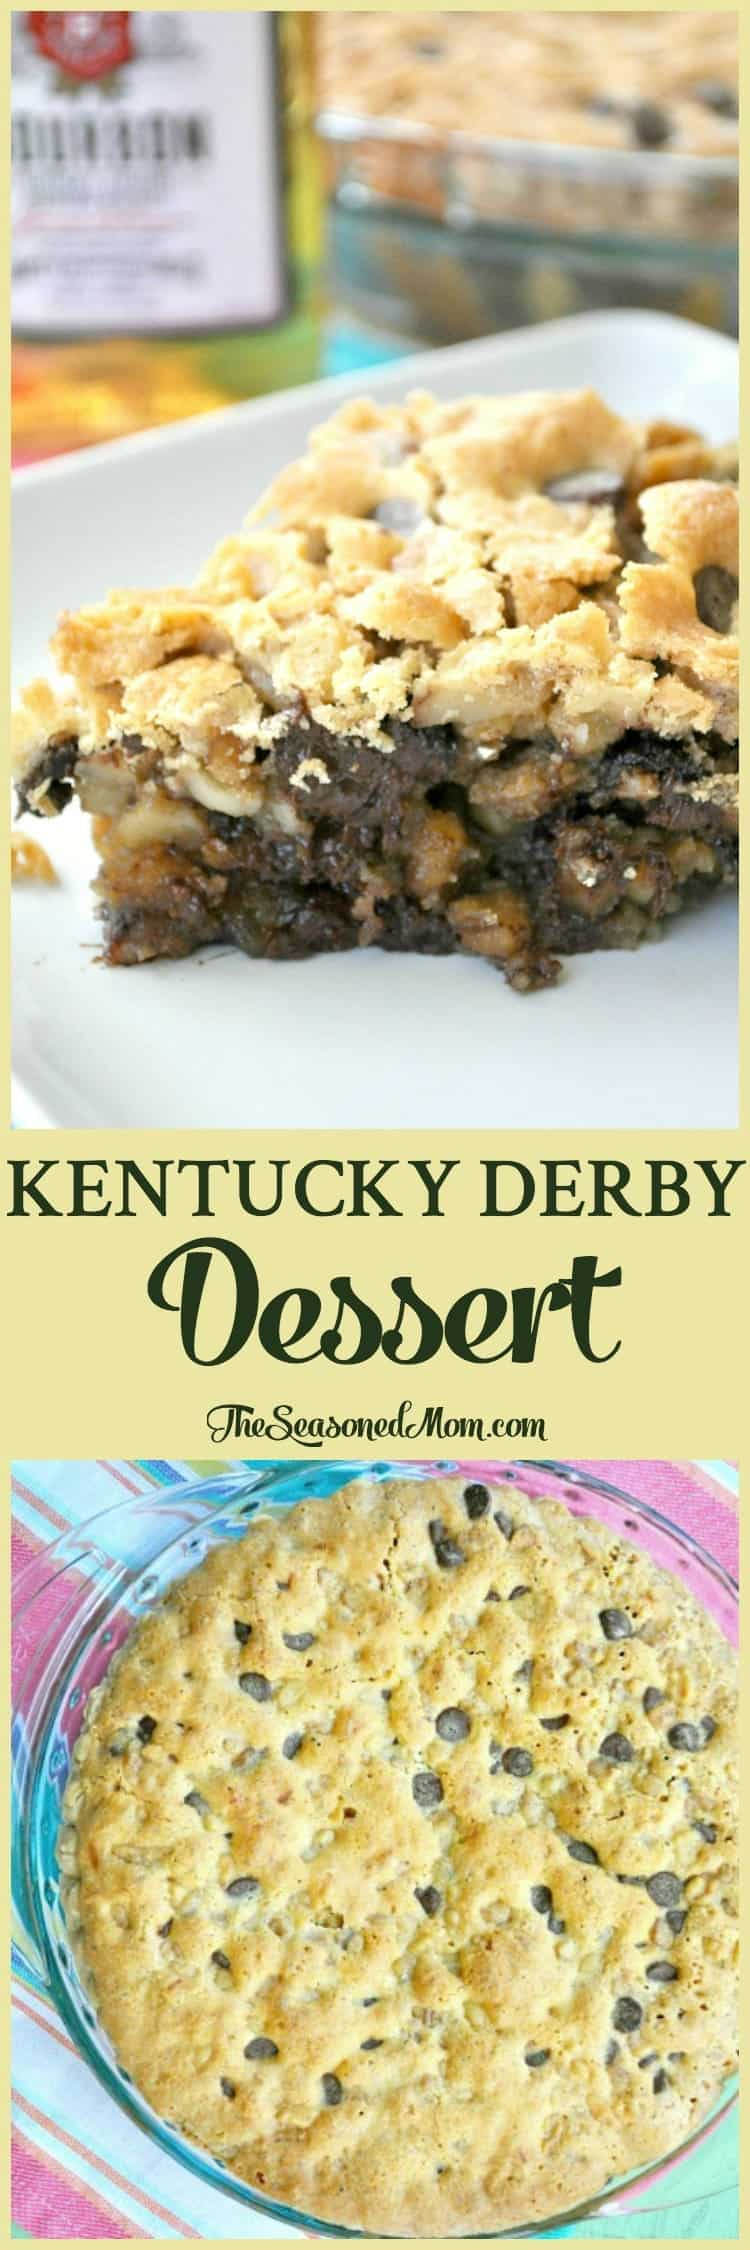 A slice of this Kentucky Derby Dessert is the perfect festive addition to your Kentucky Derby Day celebration! A thick, gooey chocolate chip cookie meets a warm buttery pie that's spiked with just the right amount of bourbon for a heavenly and decadent Southern sweet!